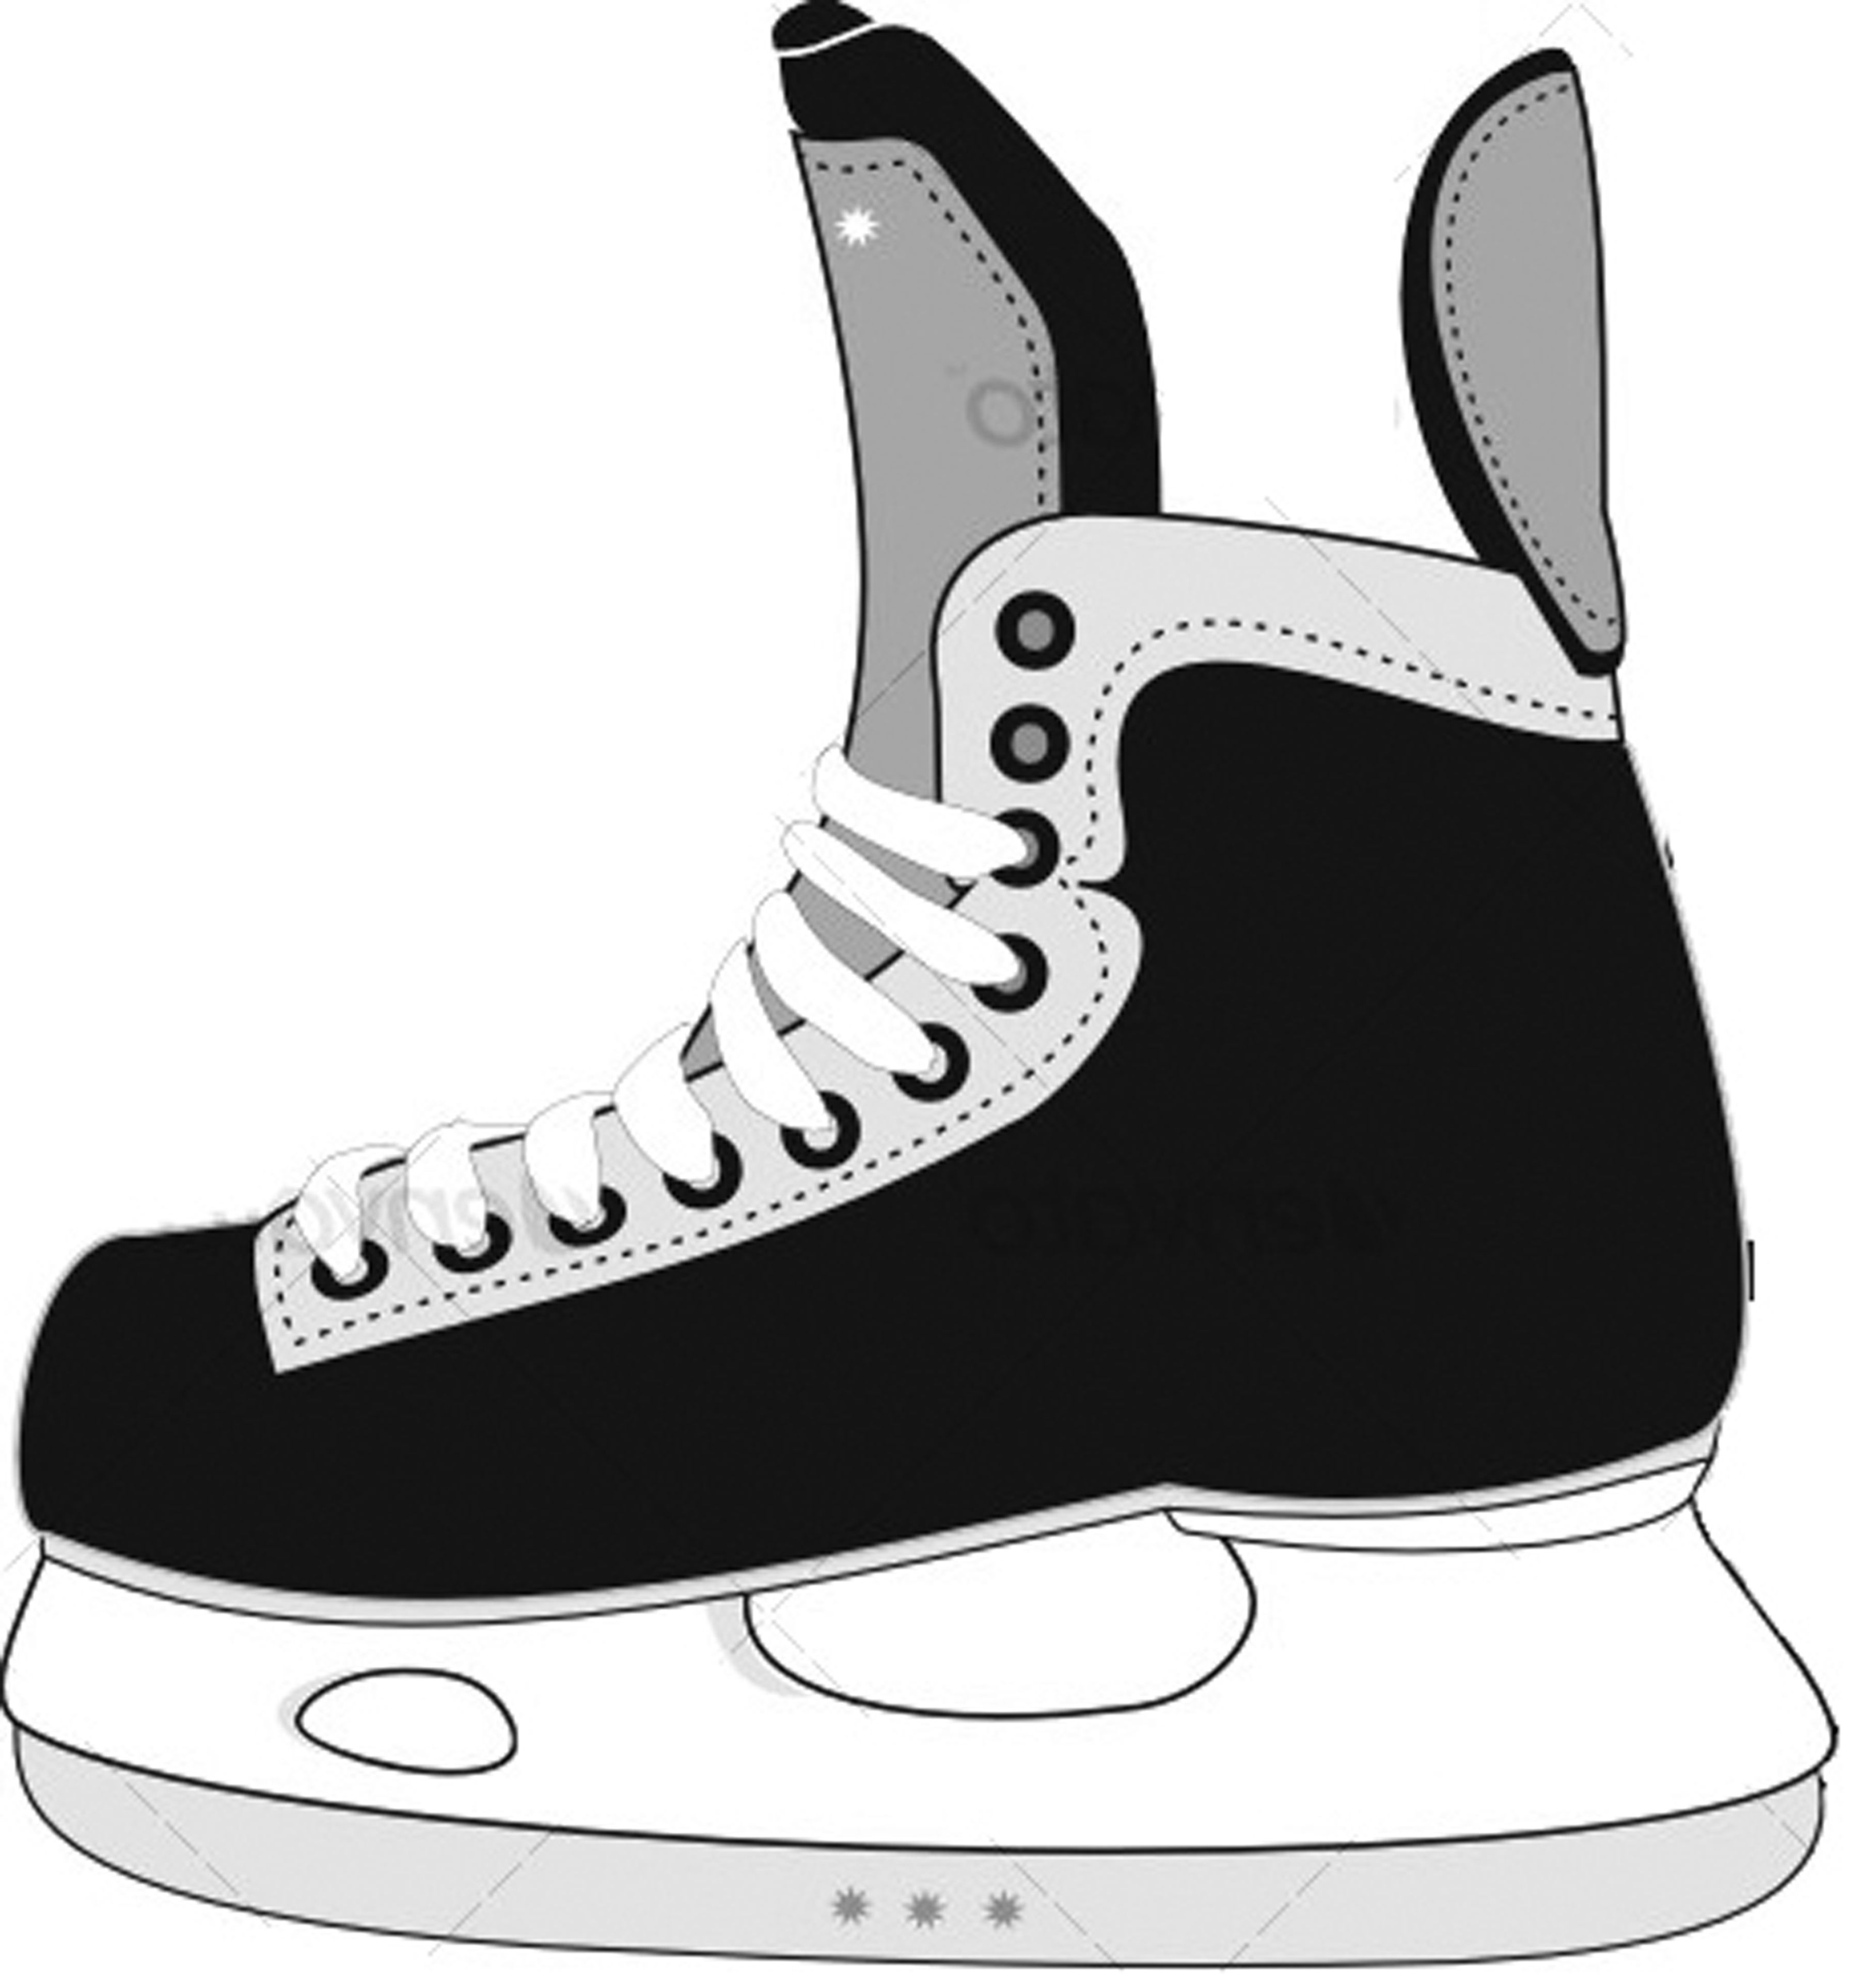 Displaying 20 Images For Cartoon Hockey Skates Hockey Tournaments Boys Hockey Hockey Crafts